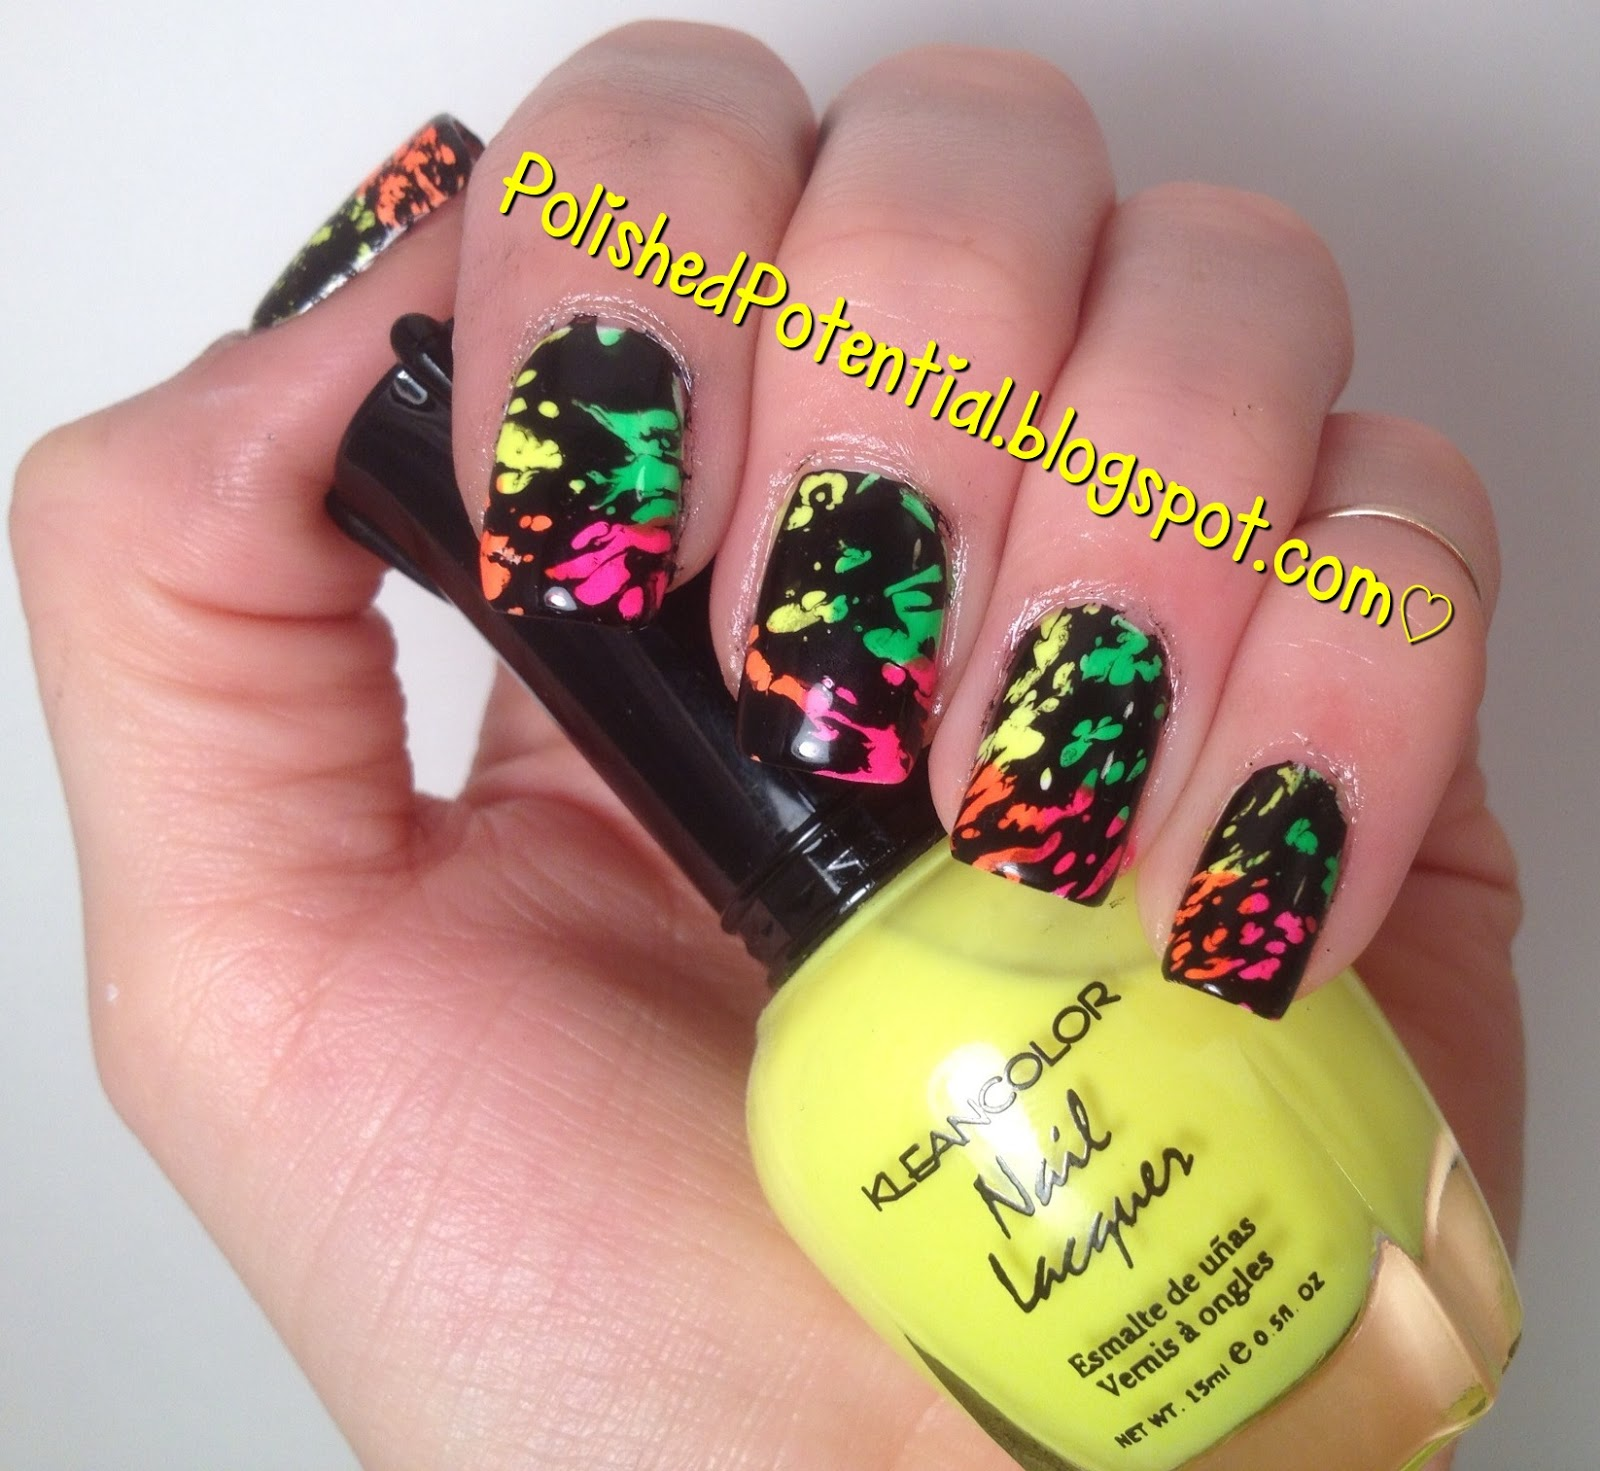 Nail Art February Challenge: Polished Potential: February Nail Art Challenge